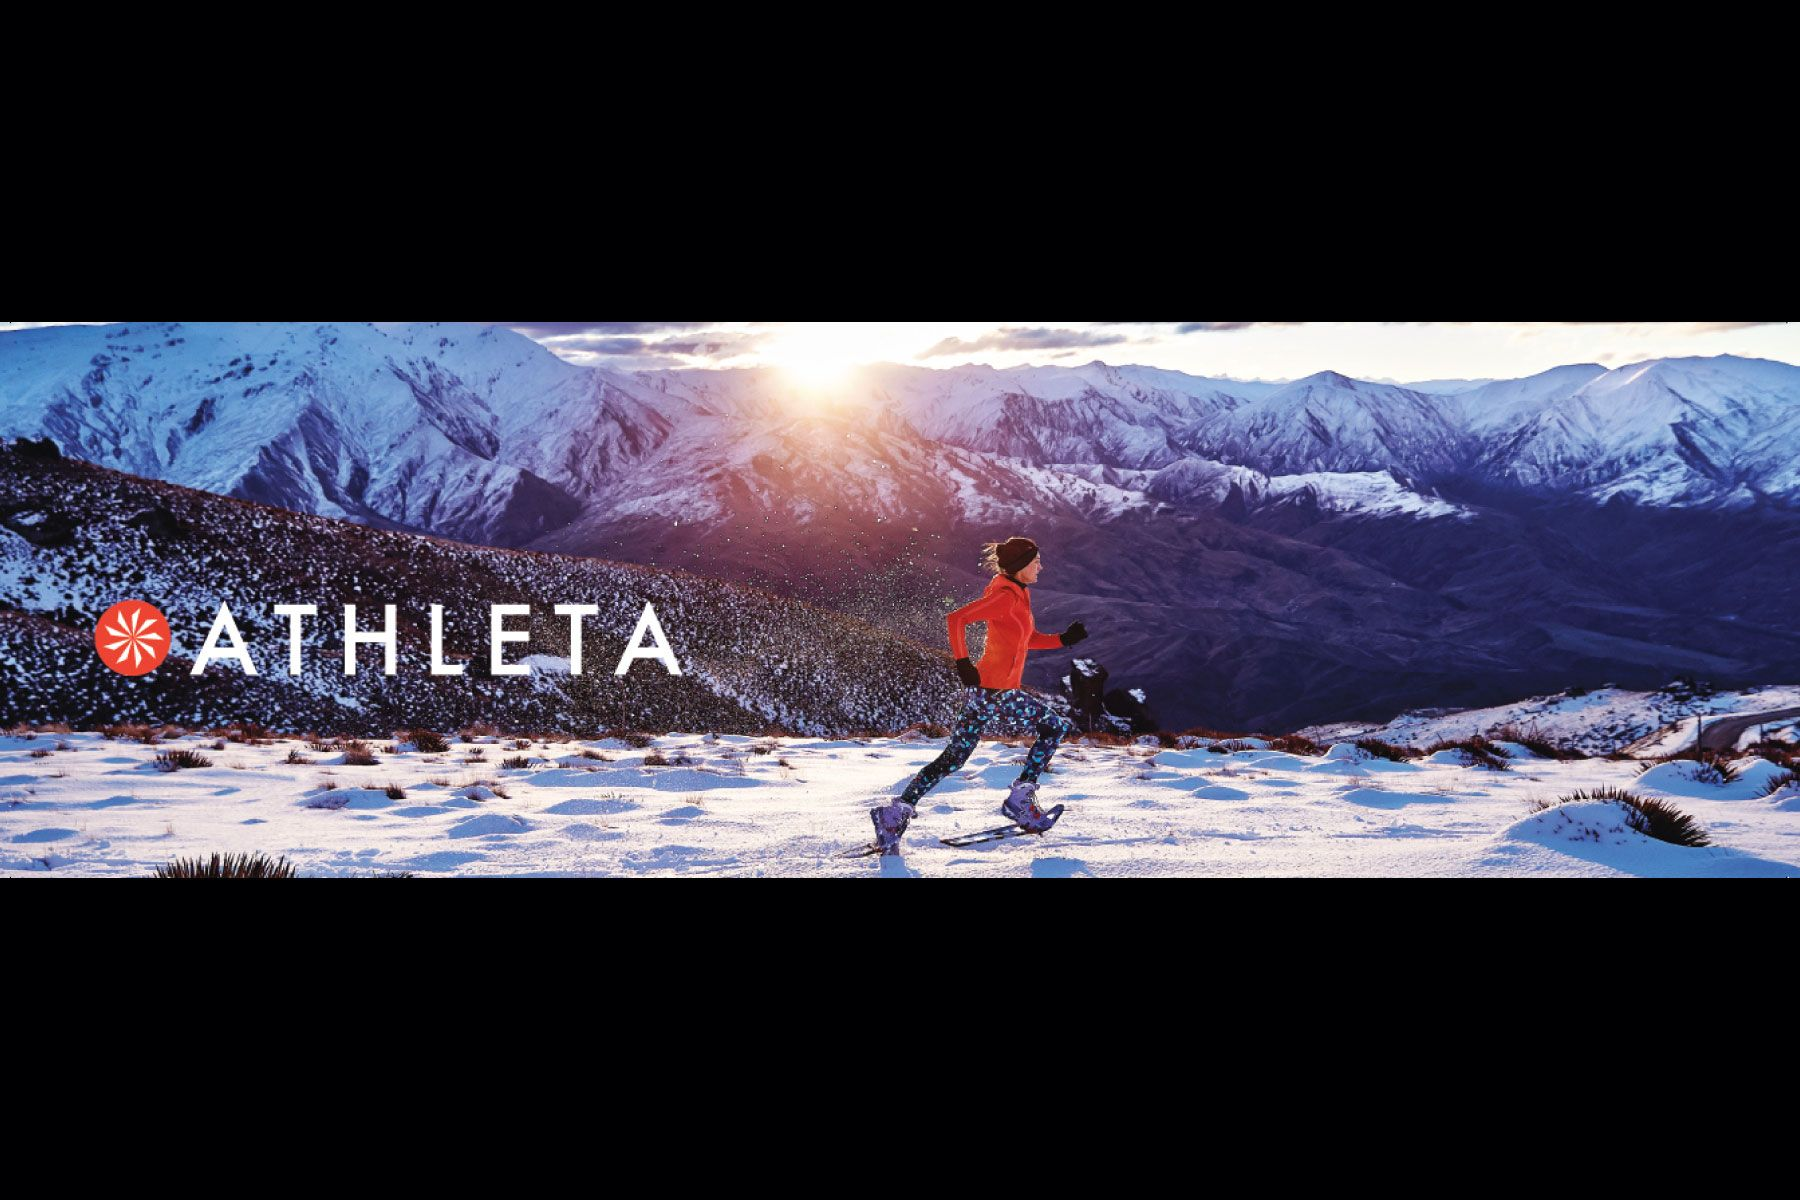 Athleta-Opening-Images1.jpg